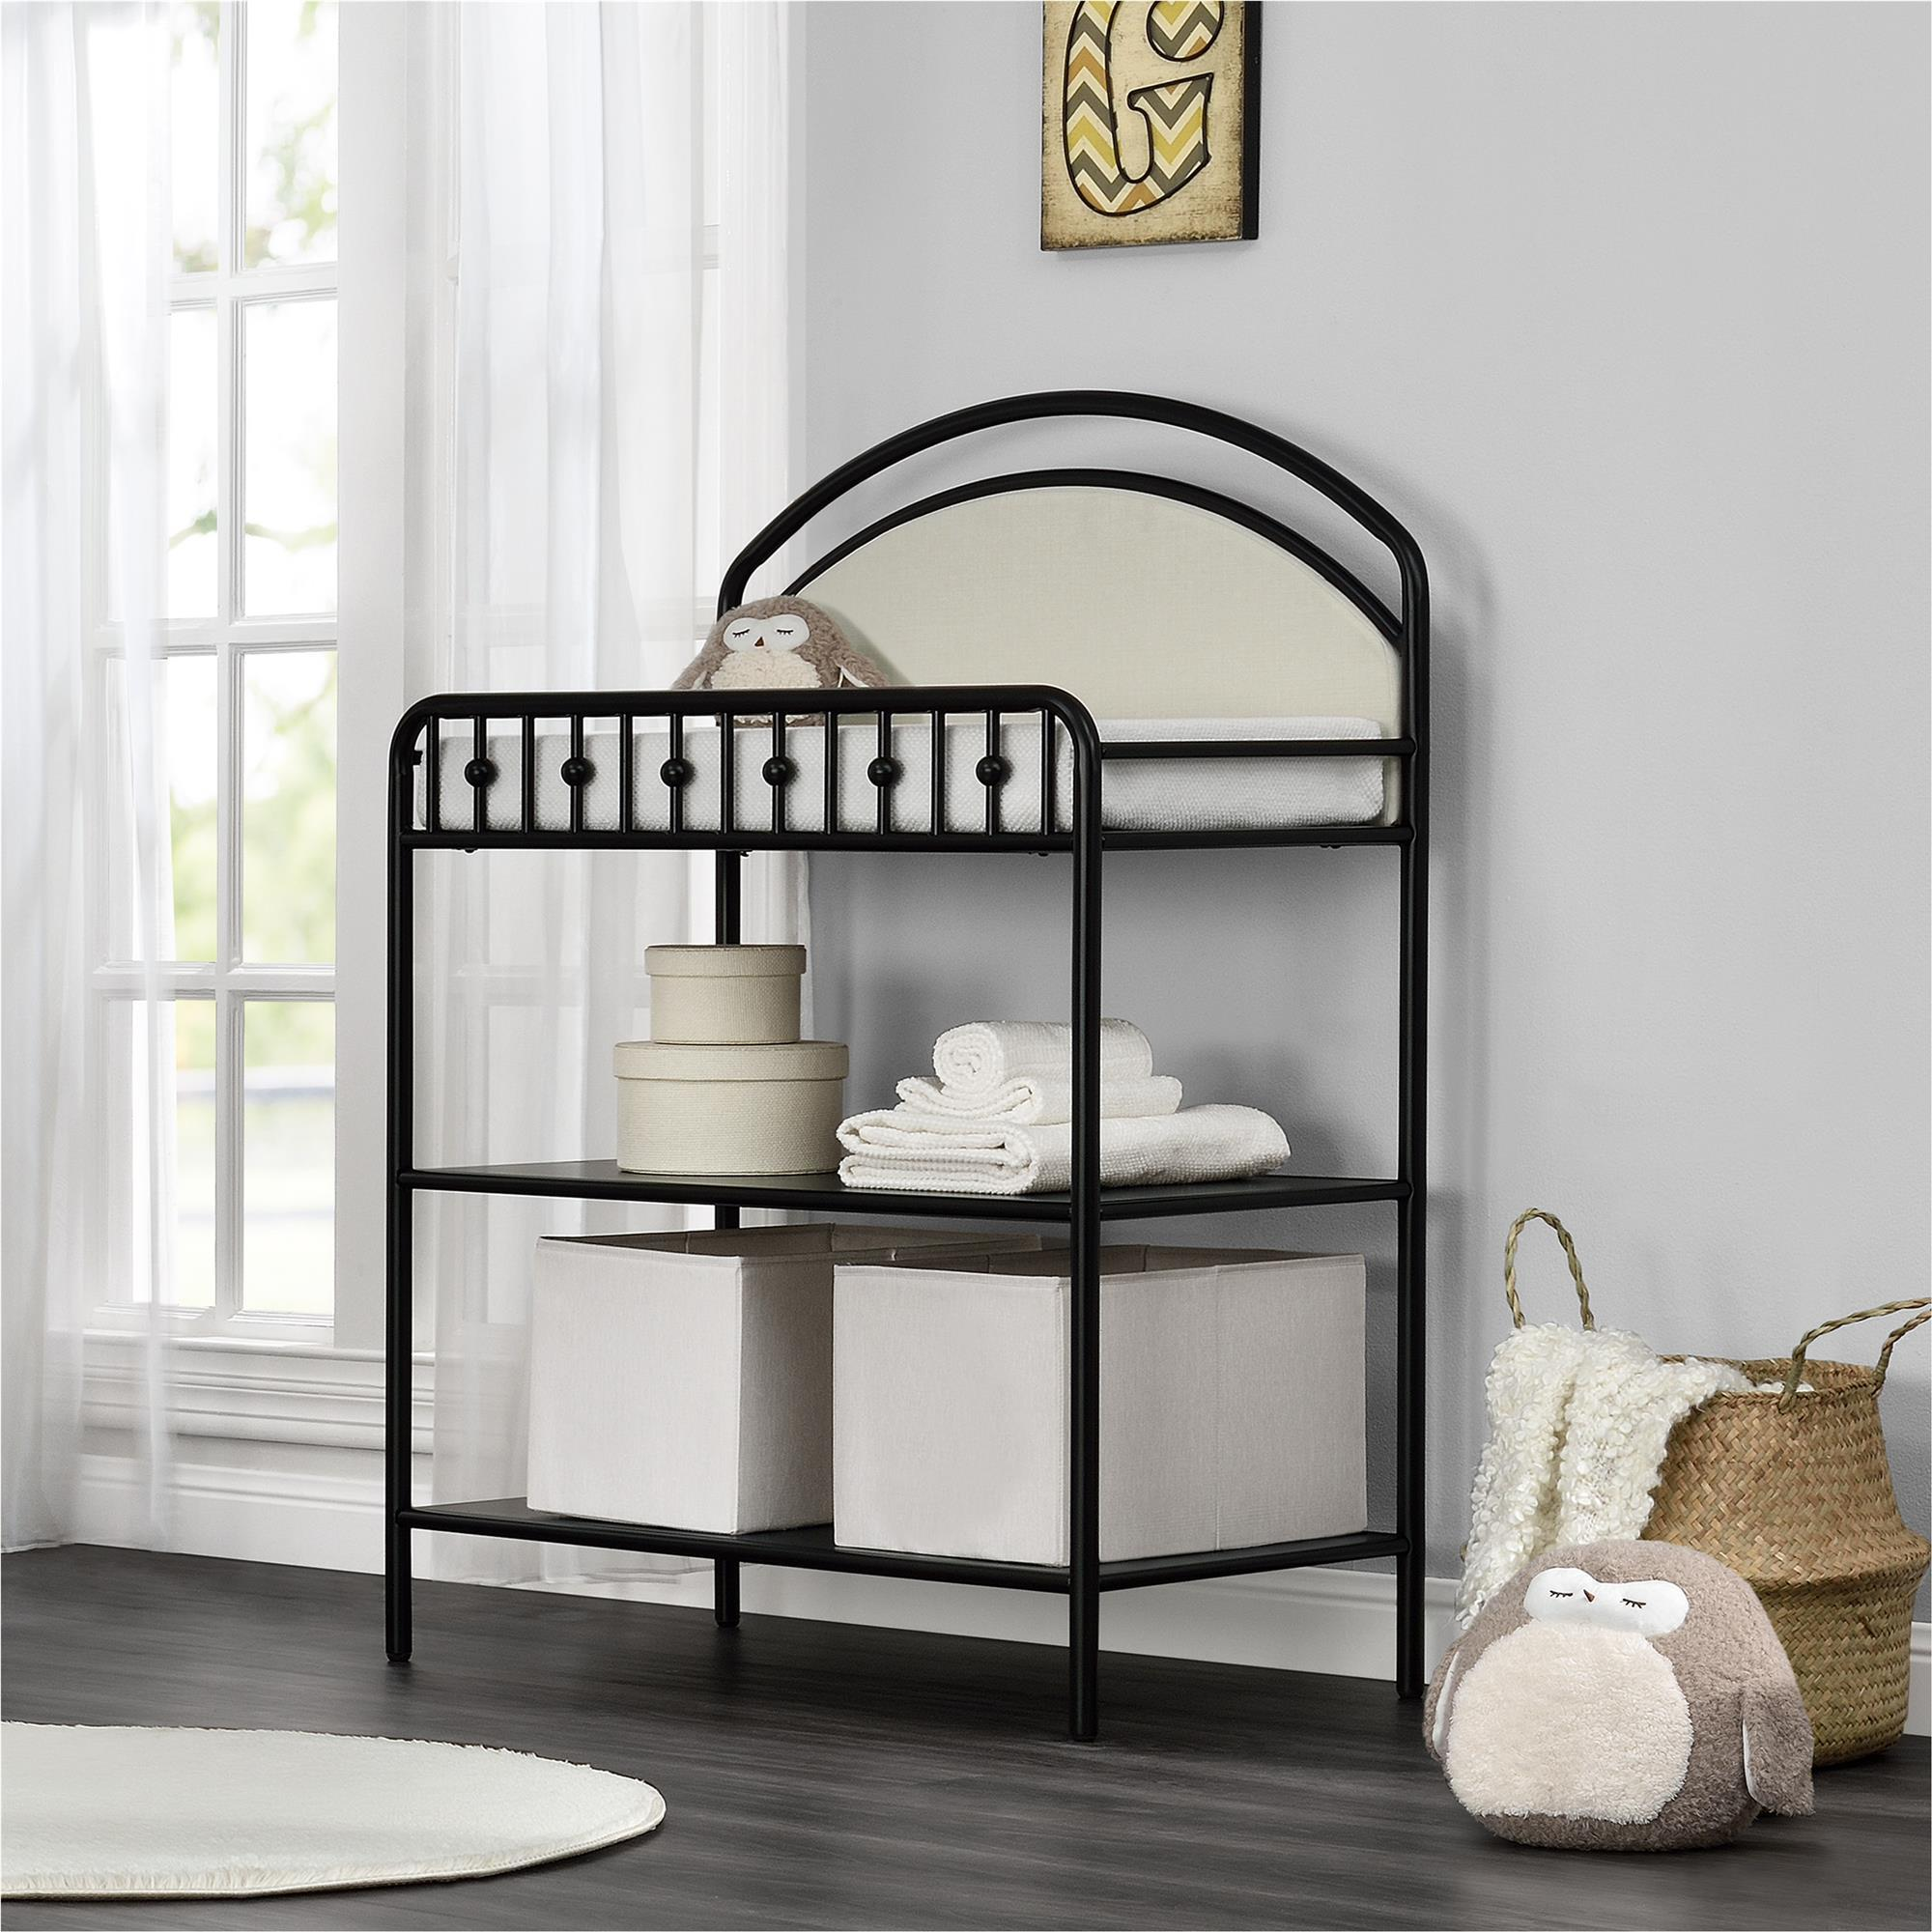 Awesome Shop Little Seeds Rowan Valley Black Lotus Upholstered Metal Changing Table    Free Shipping Today   Overstock.com   19569701